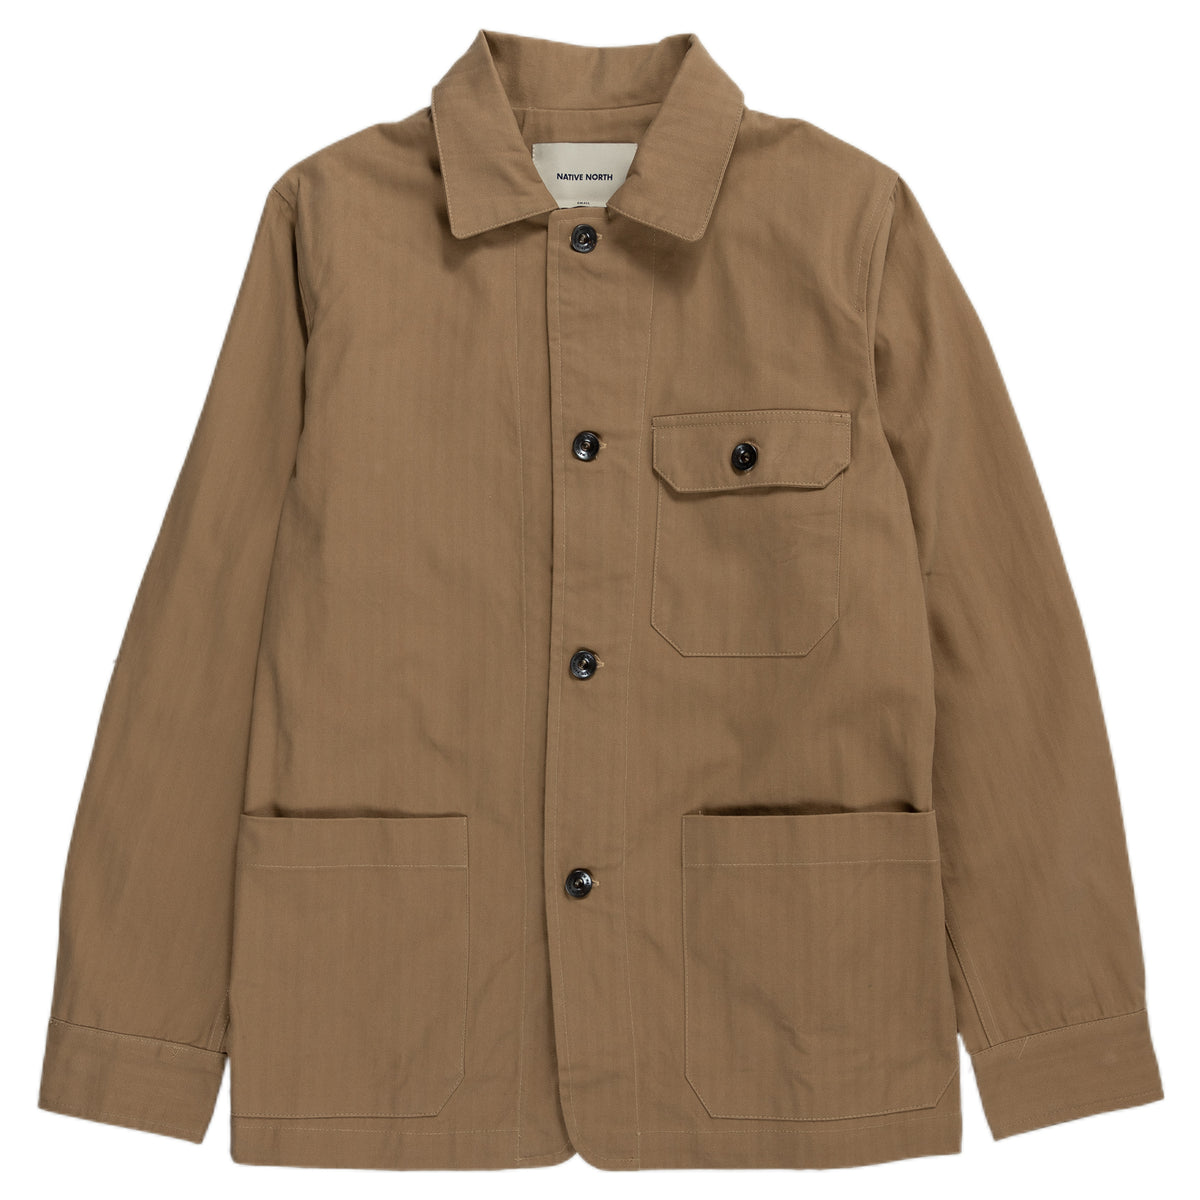 Native North Herringbone Utility Jacket Outerwear Khaki Front